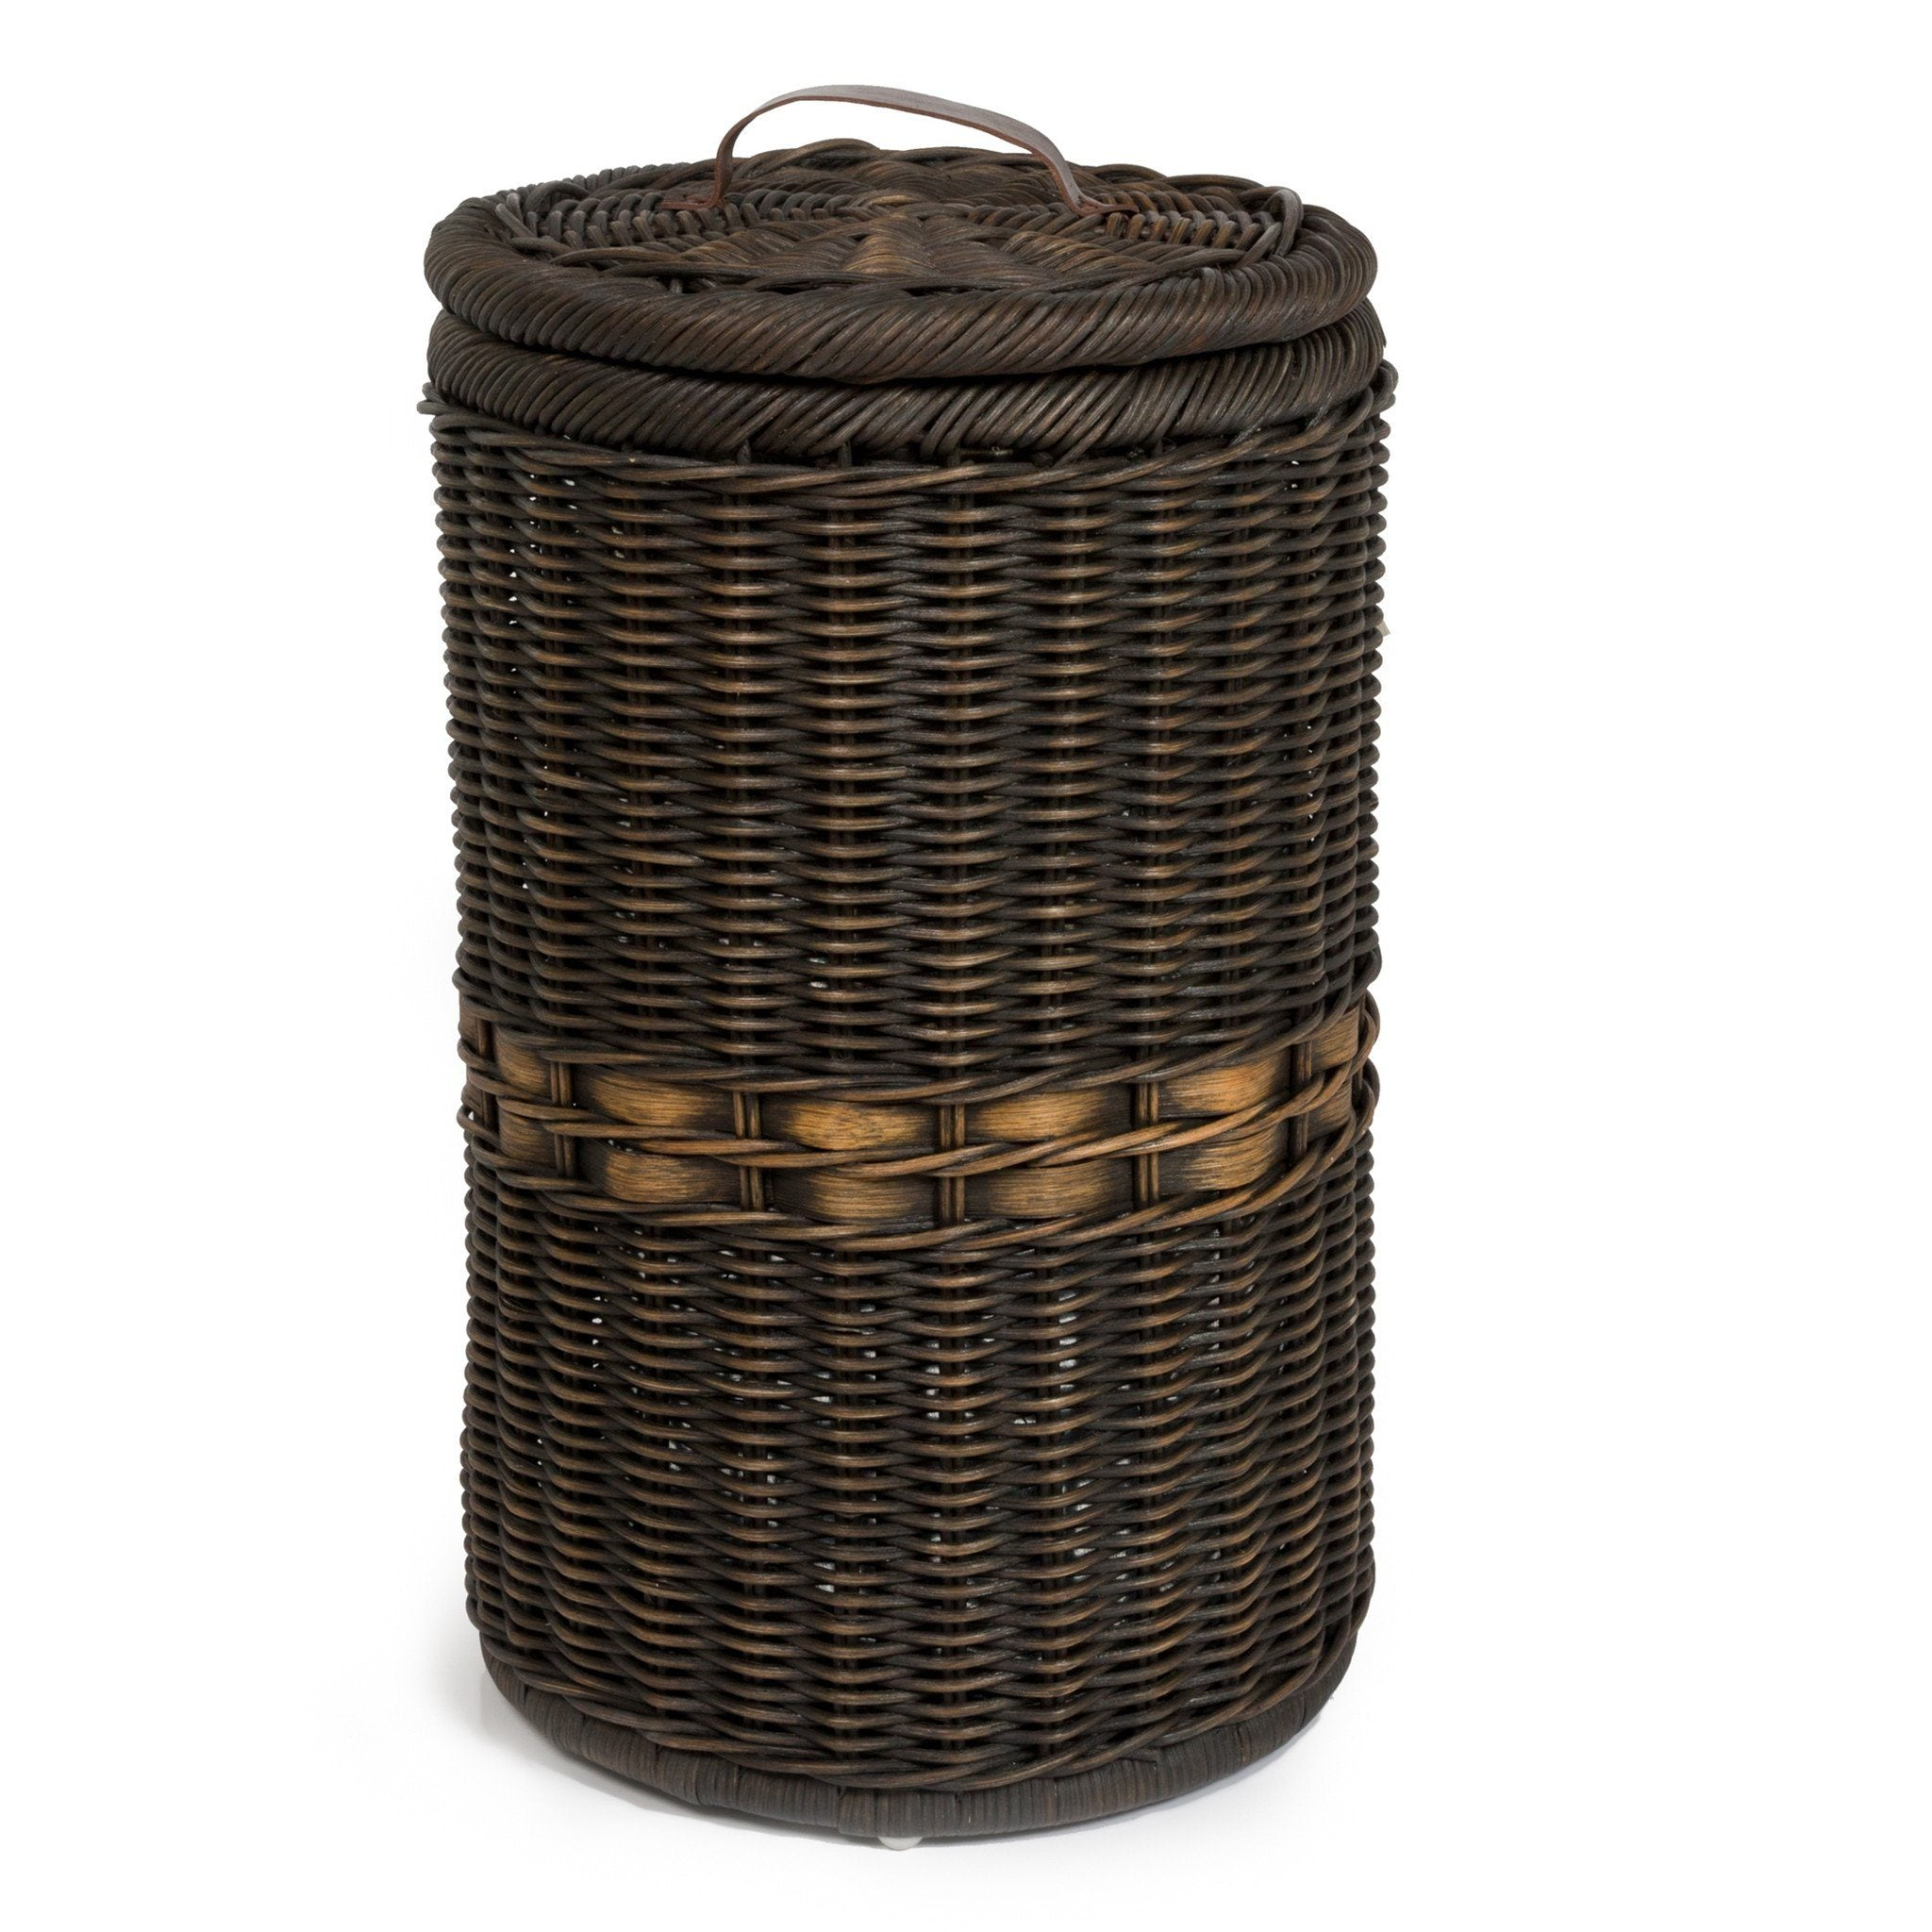 Tall wicker waste basket with metal liner the basket lady - Wicker trash basket ...